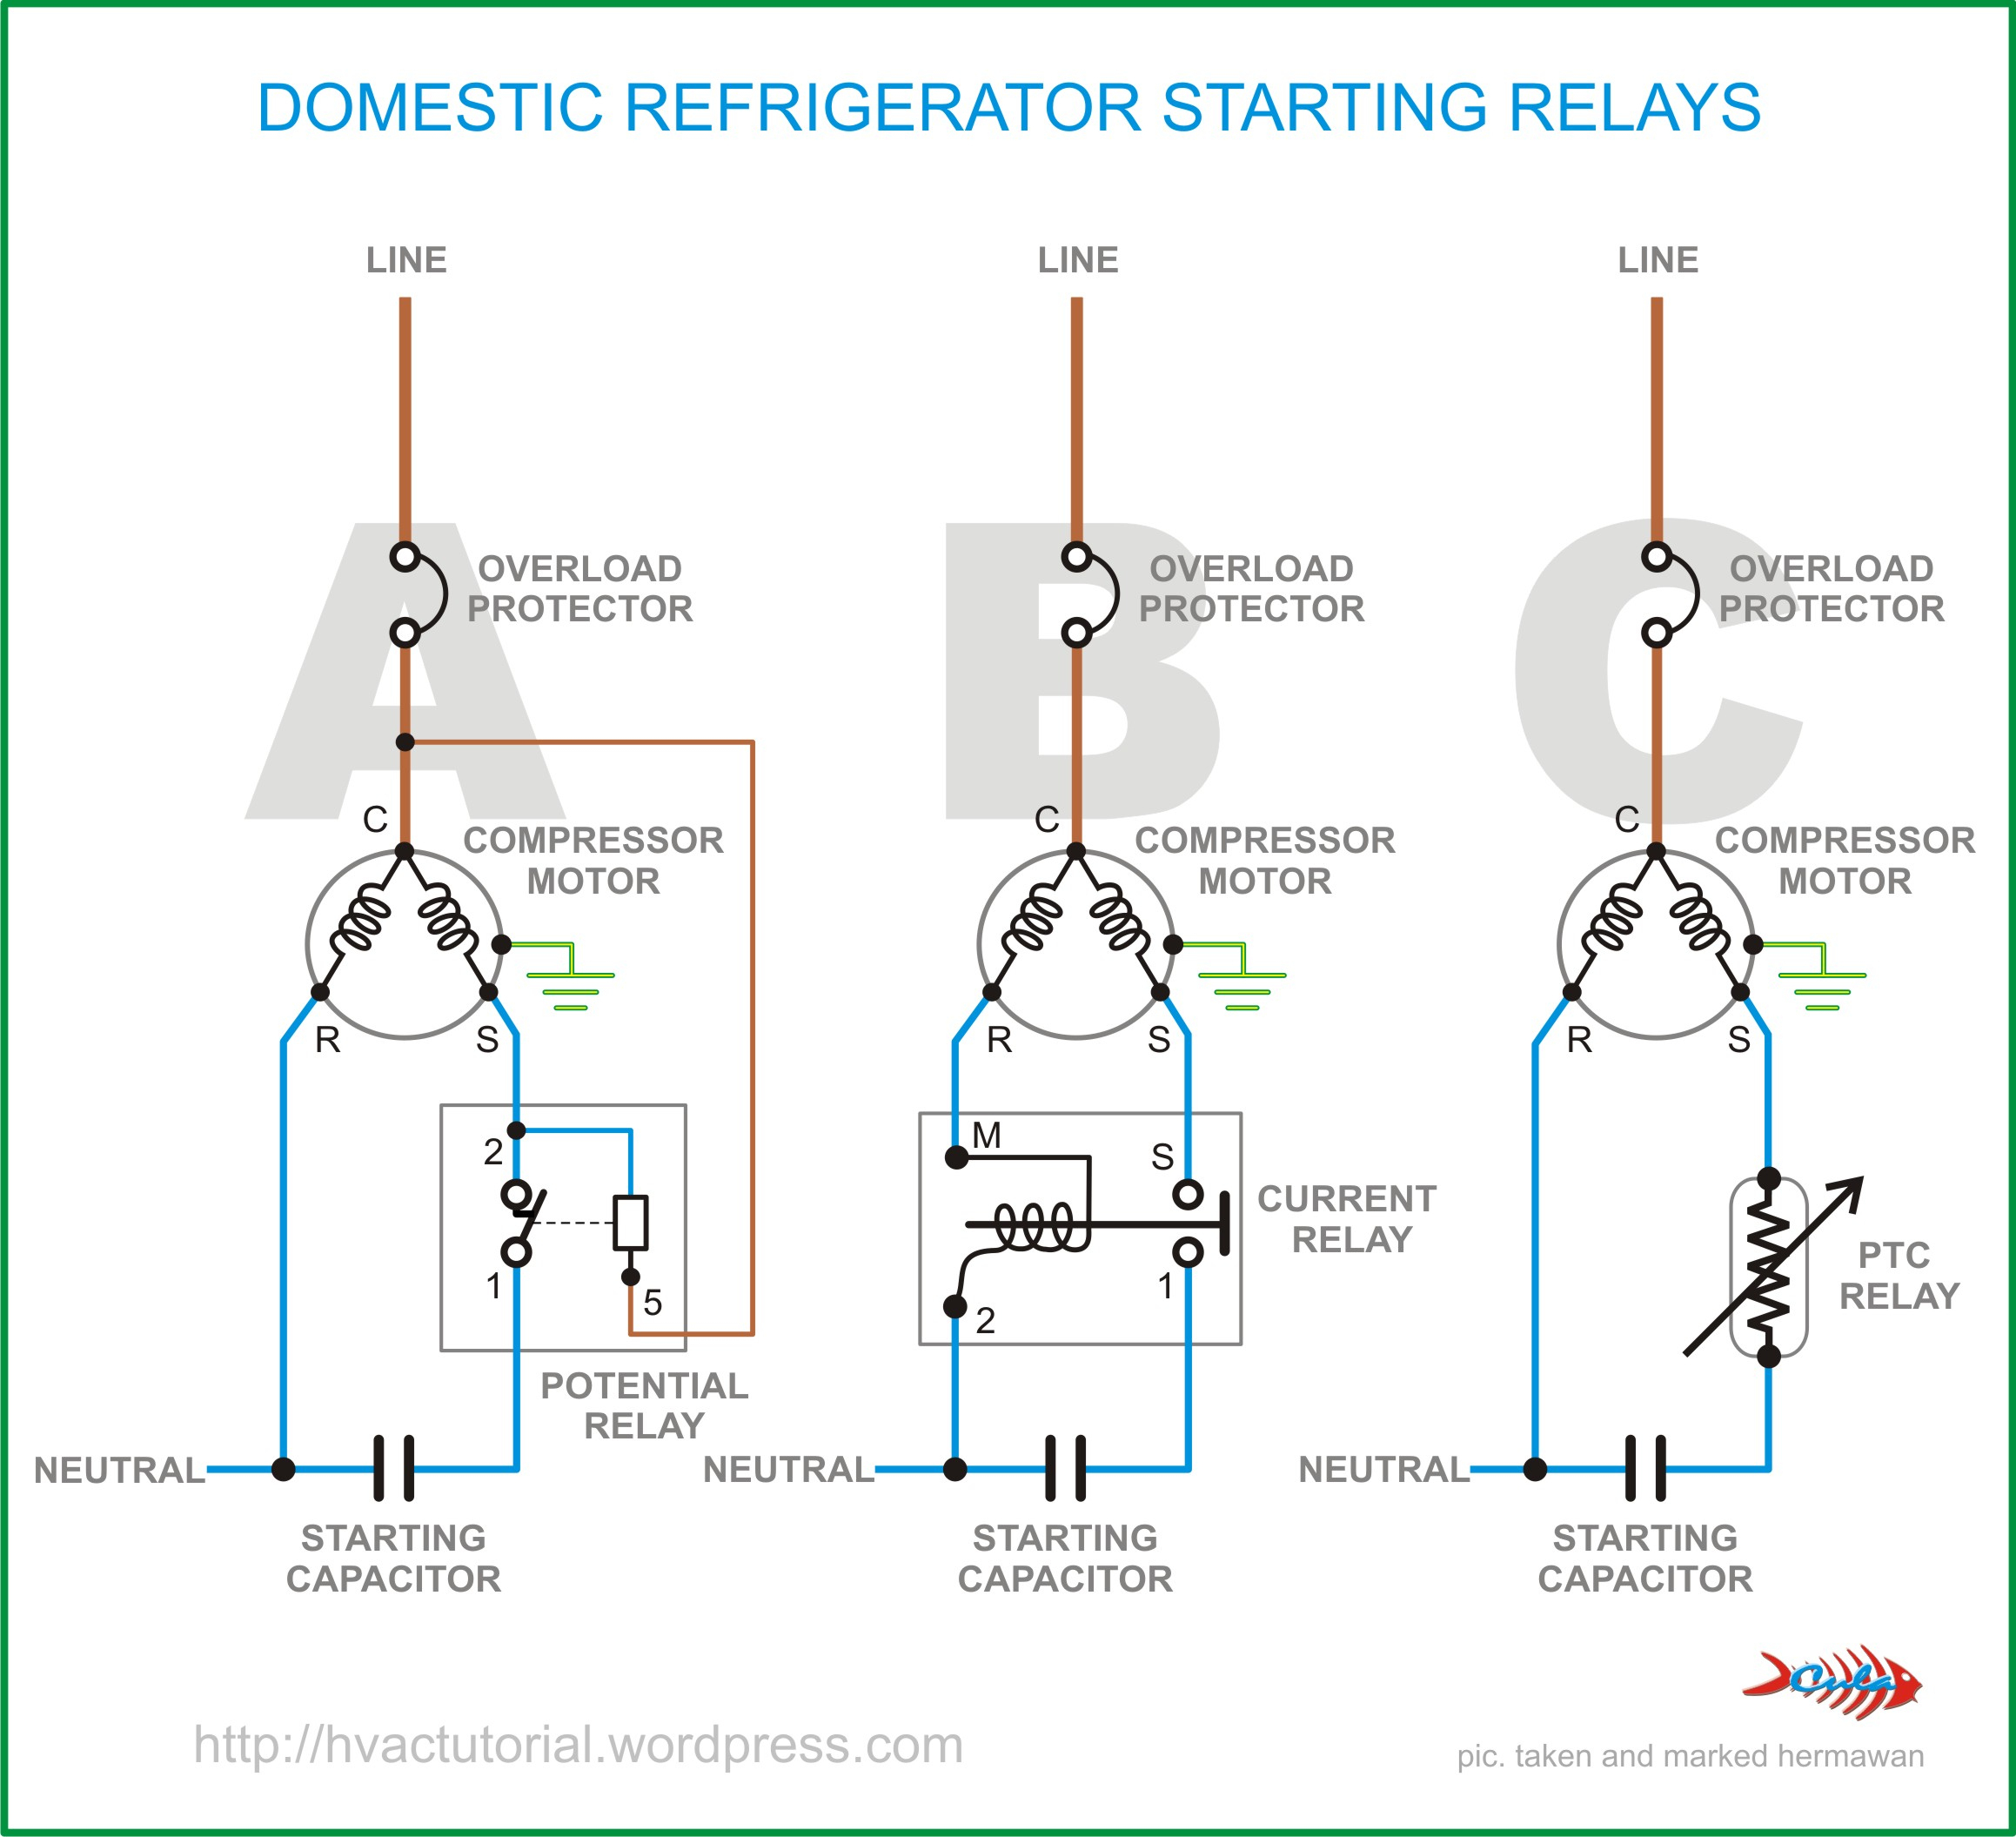 Domestic Refrigerator Starting Relays | Hermawan's Blog - Refrigerator Start Relay Wiring Diagram